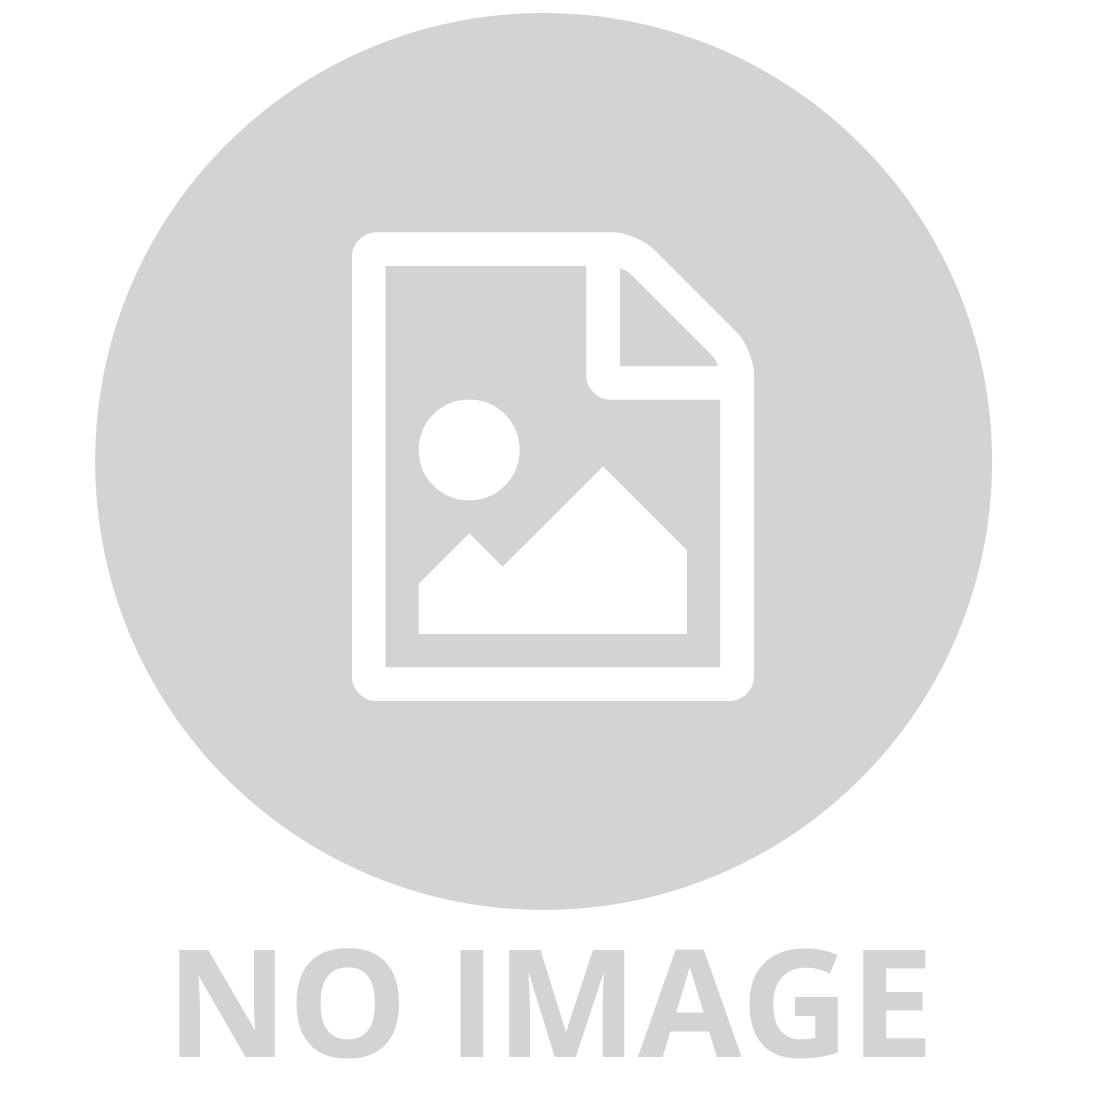 ERUPTIONS AND EXPLOSIONS FIZZING SCIENCE DISCOVERY KIT